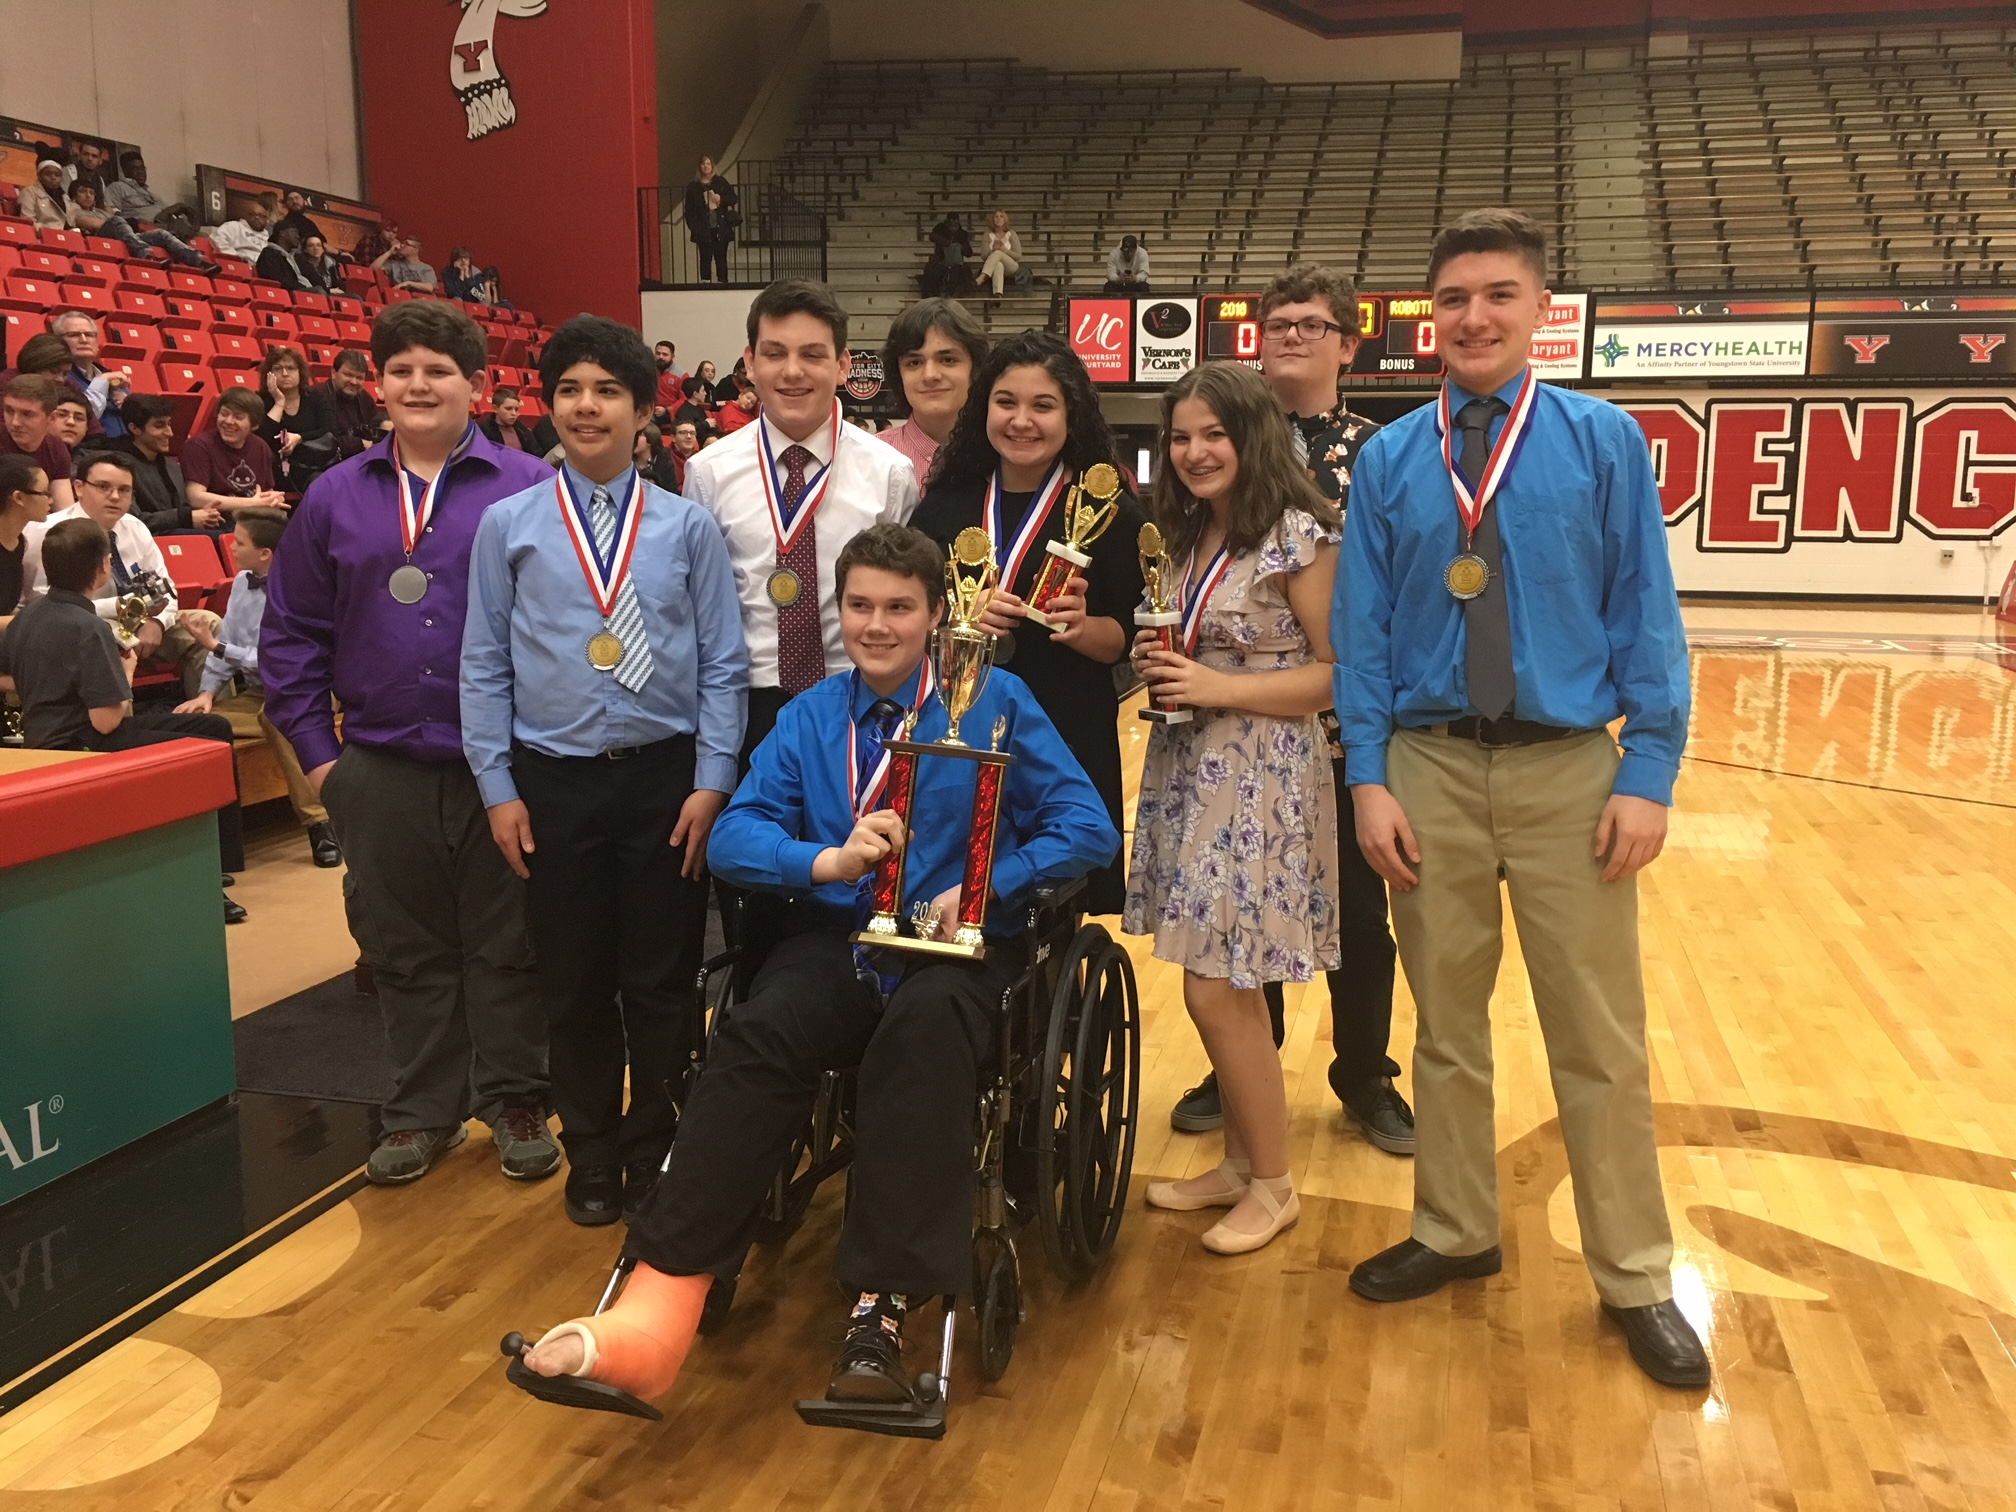 Glenwood Spartan Team holding trophies- they took 2nd place overall